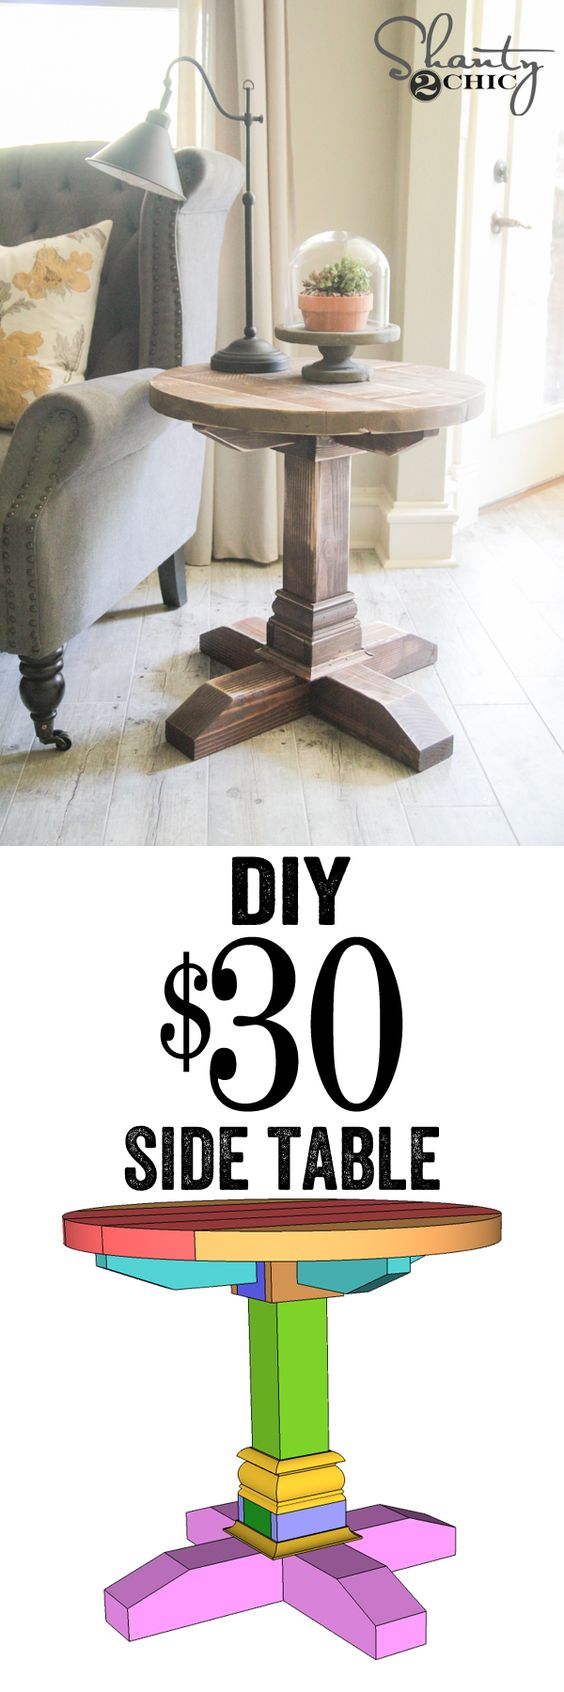 DIY Side Table.